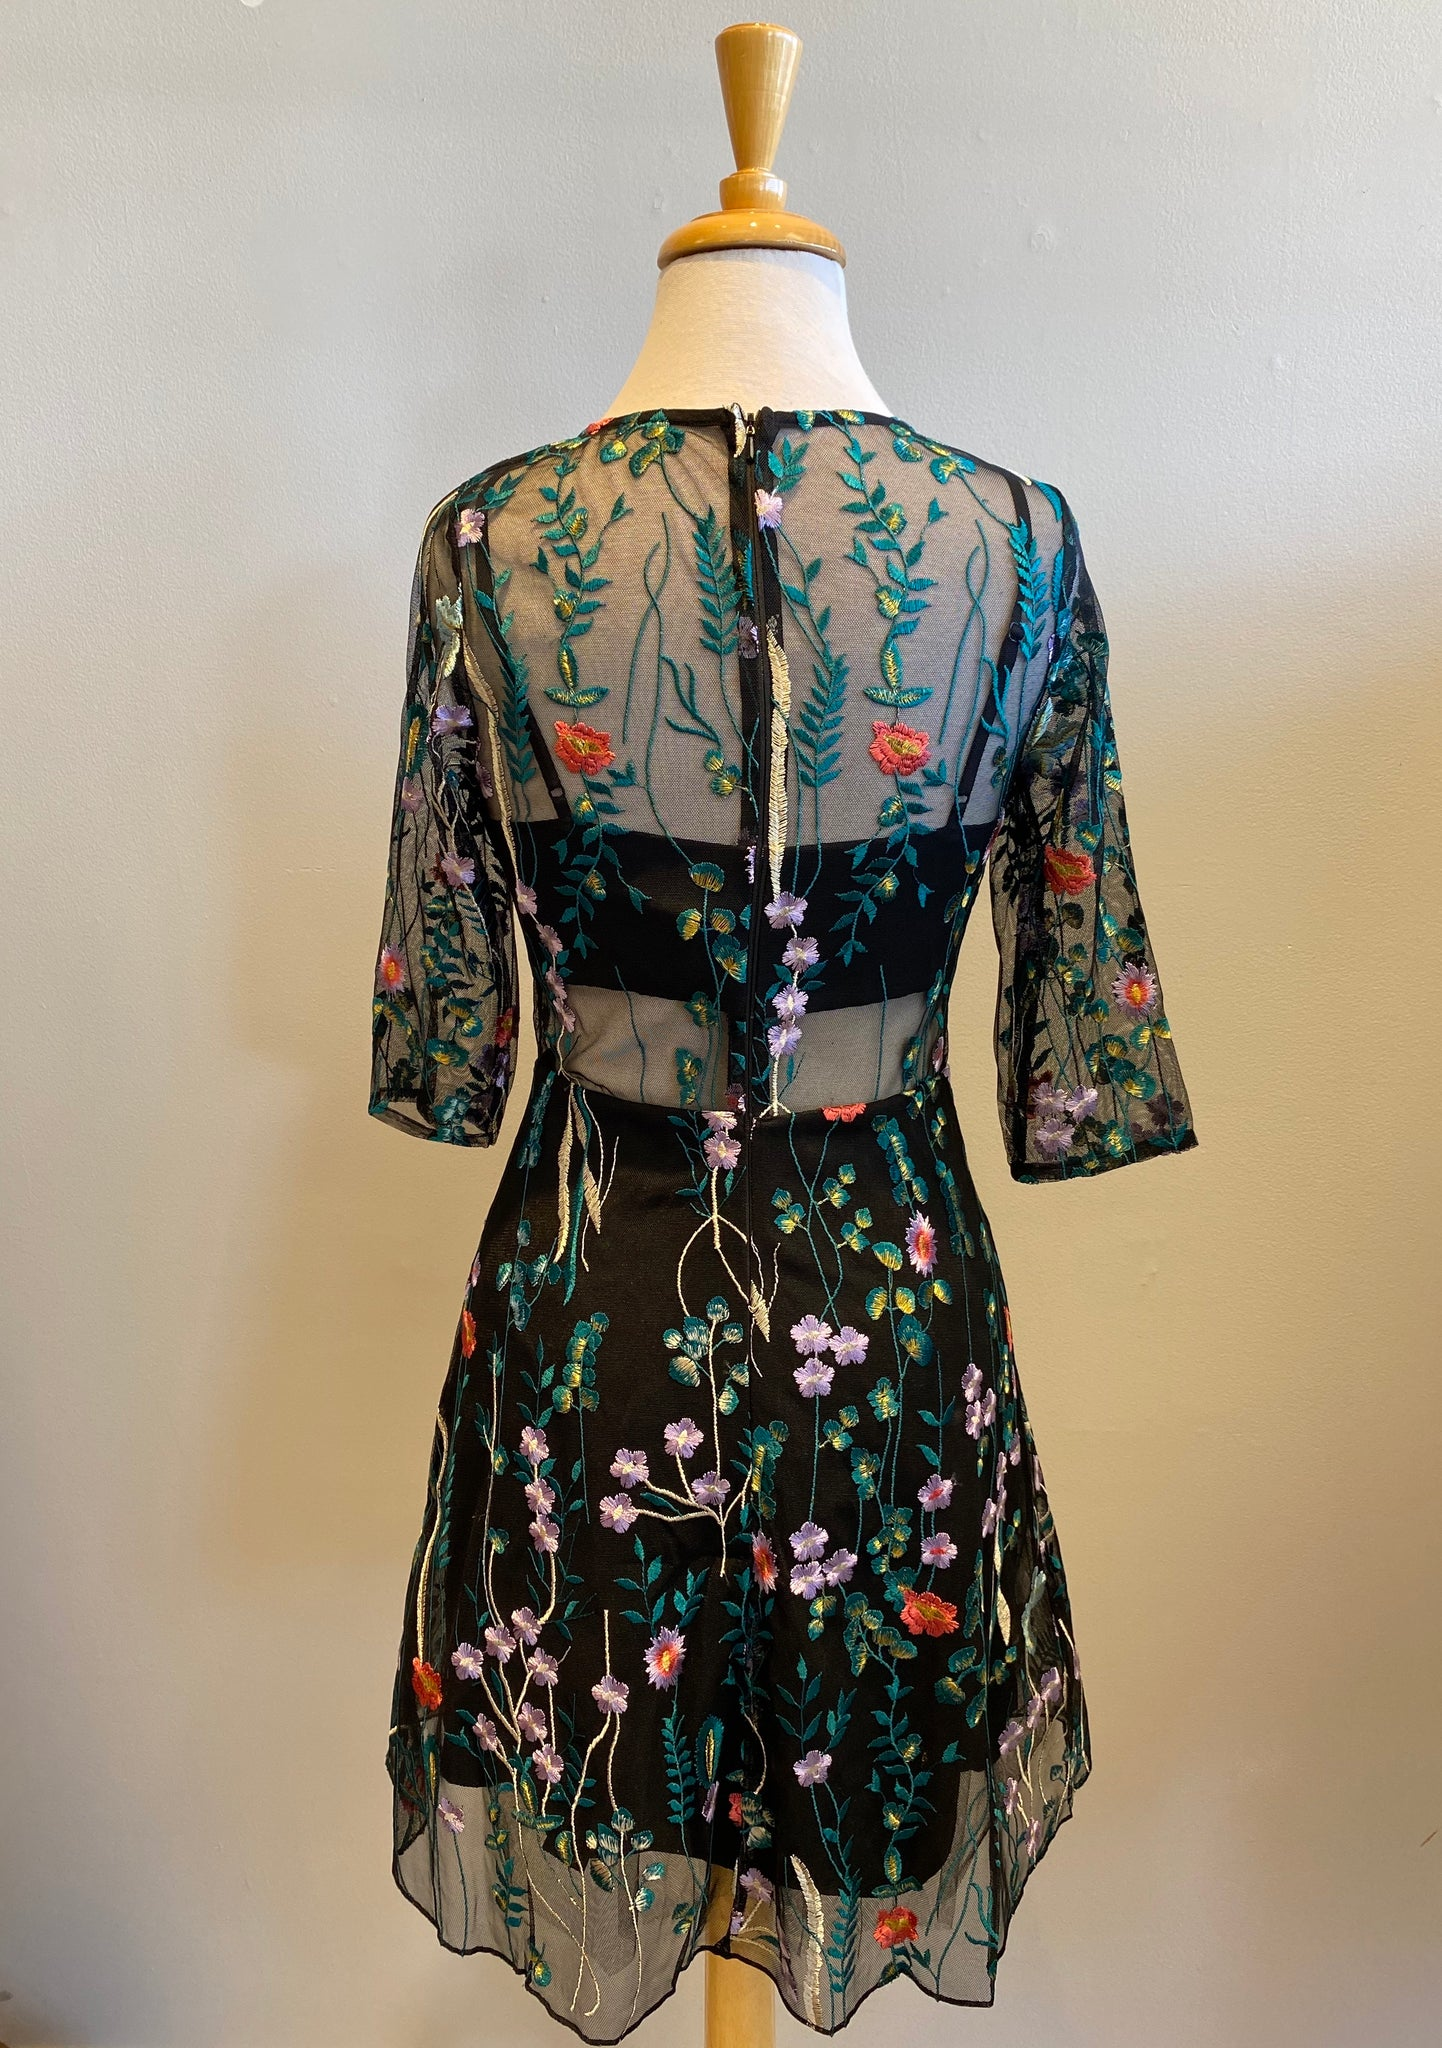 Minuet Embroidered Flower Dress - Showroom56